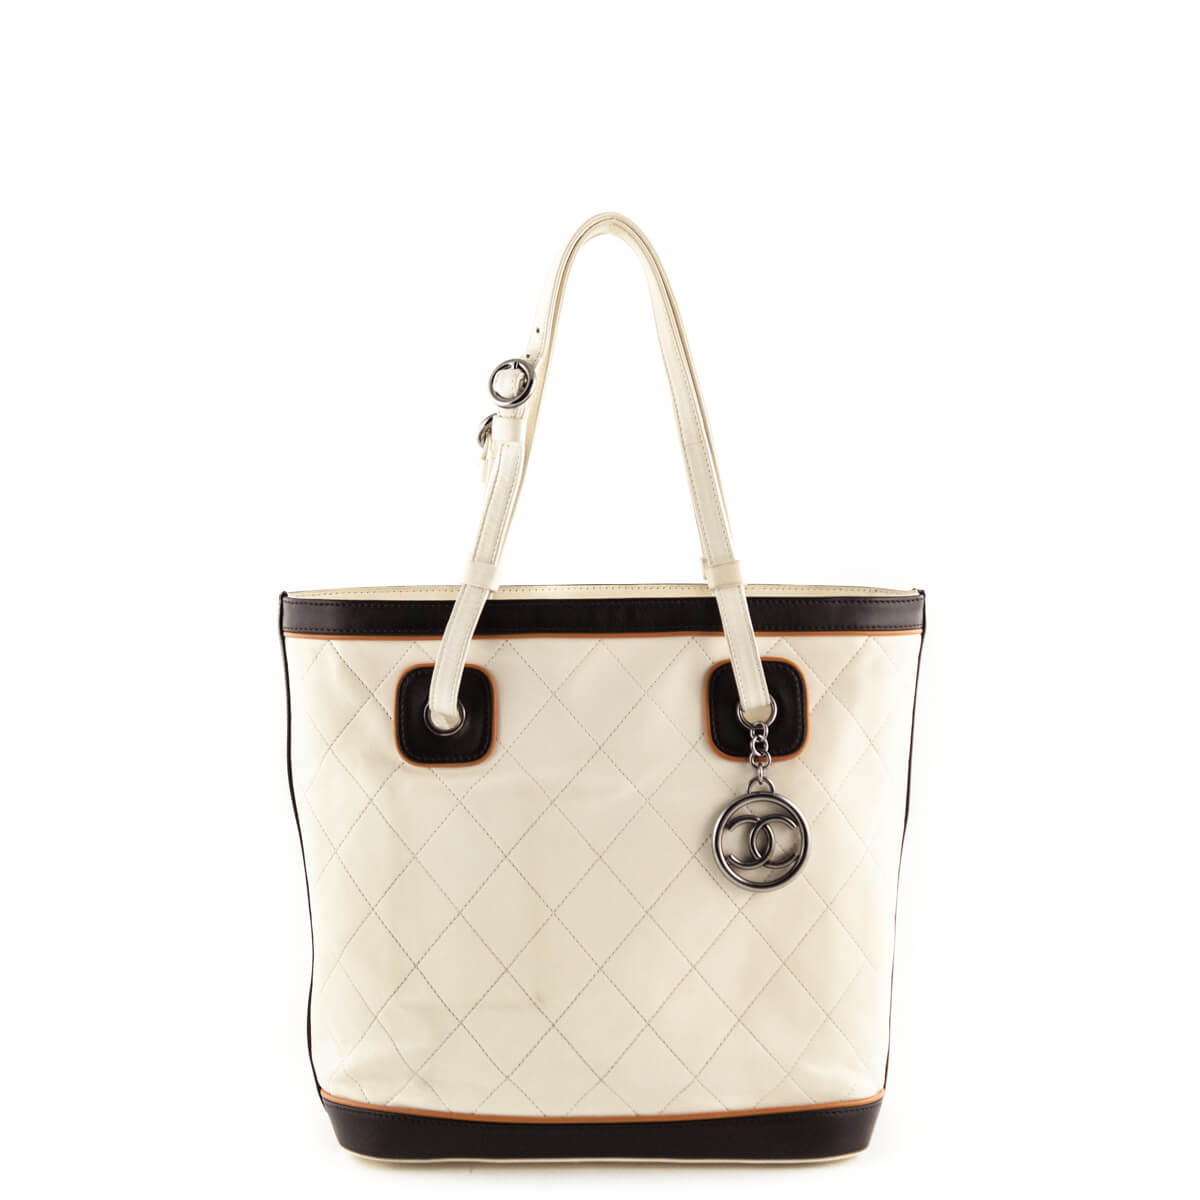 8f57ad481135 Chanel Cream Quilted Top Handle Tote - LOVE that BAG - Preowned Authentic  Designer Handbags ...